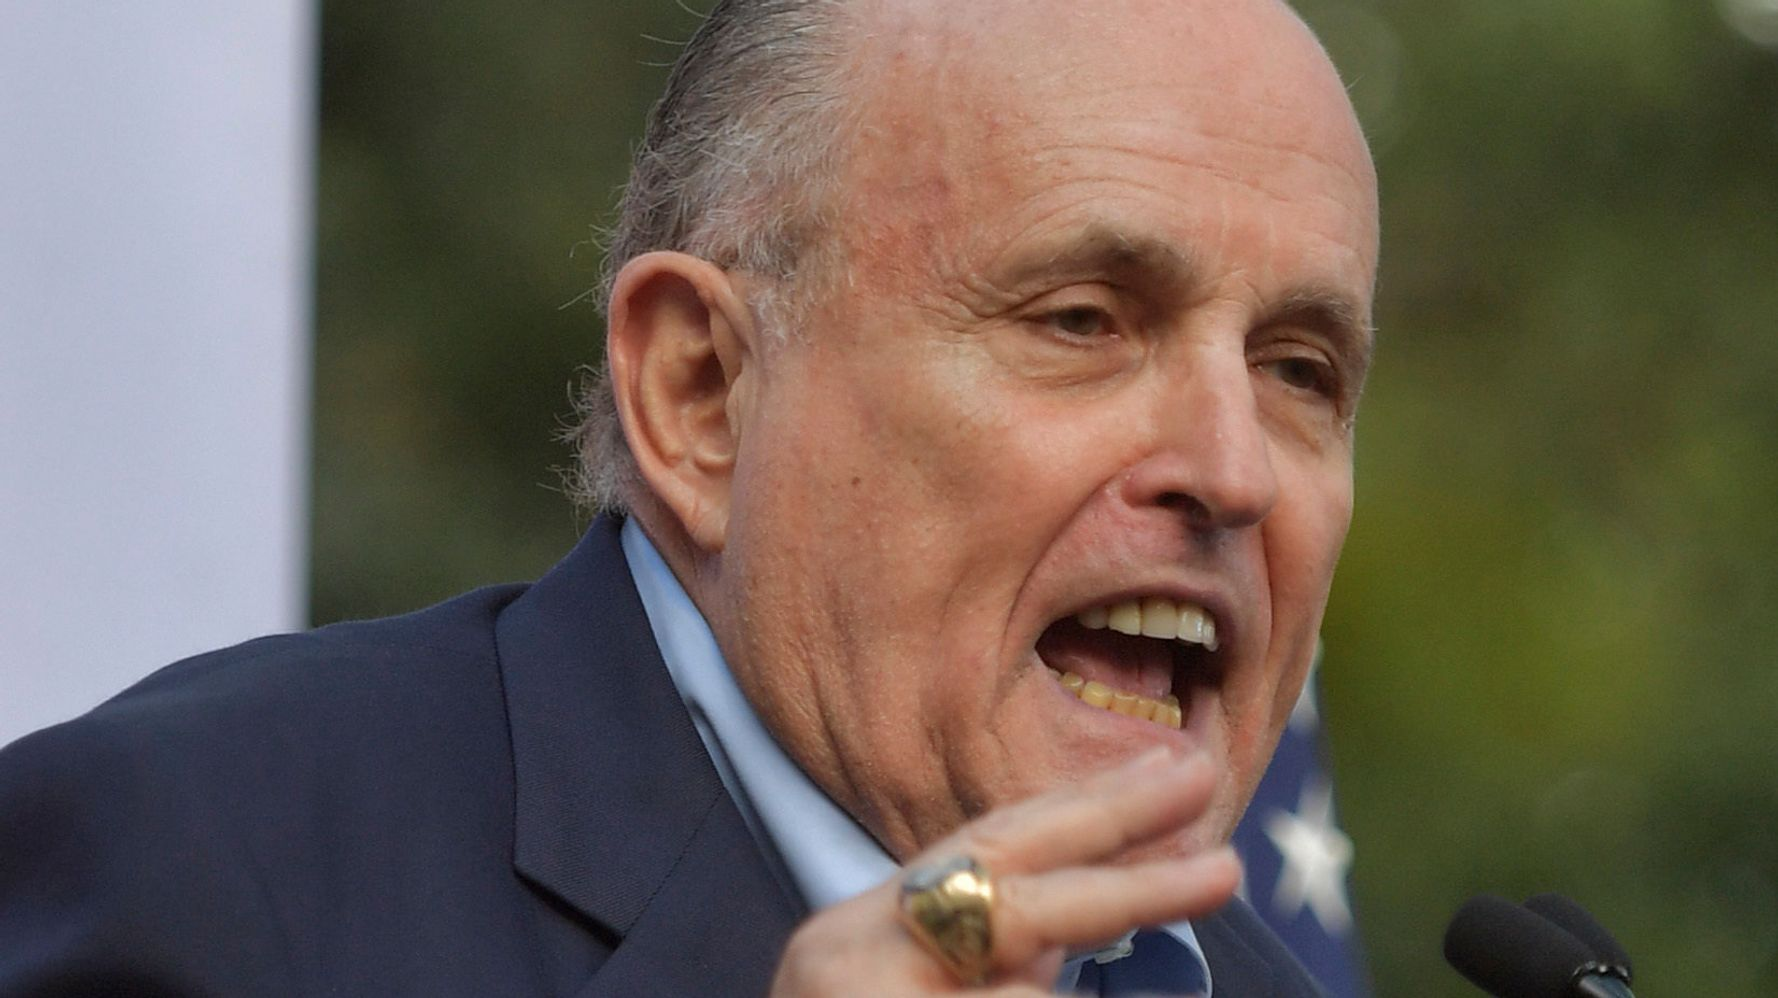 Twitter Deletes Fake COVID-19 Drug Tweet By Rudy Giuliani